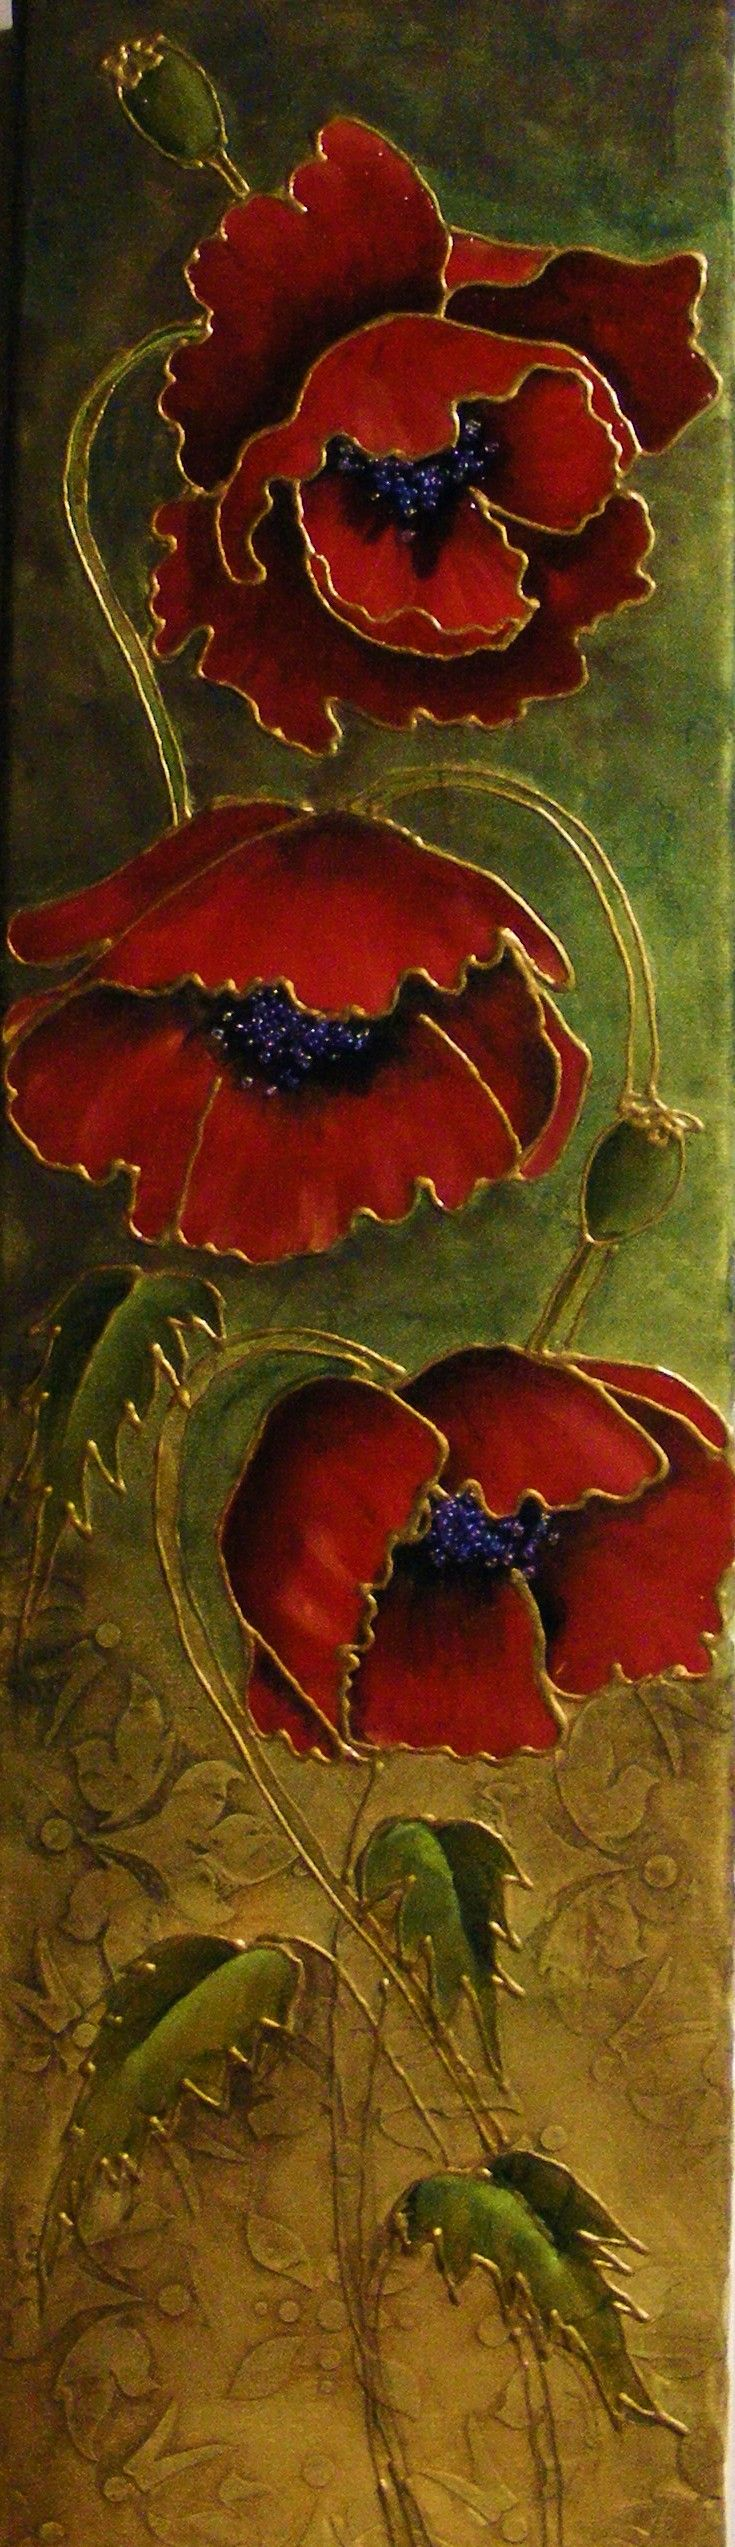 Faux Cloisonné Poppies made by Tracy Moreau! We love this beautiful art work!